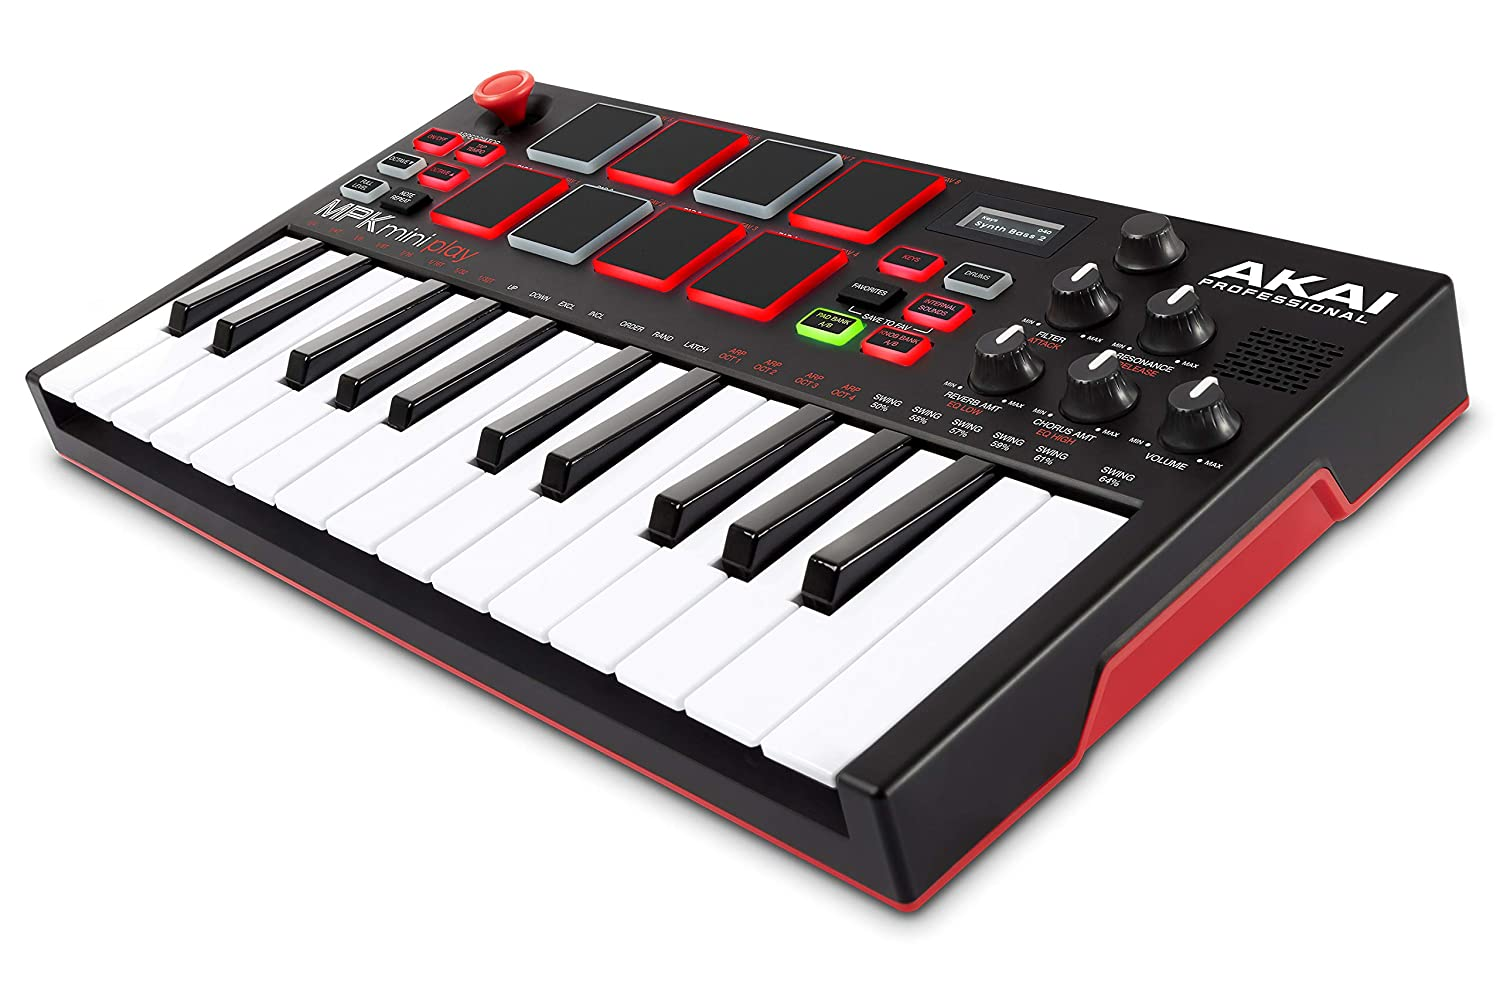 Akai Professional MPK Mini Play   Standalone Mini Keyboard & USB Controller  With Built-In Speaker, MPC-Style Pads, On-board Effects, 128 Instrument- &  10 ...